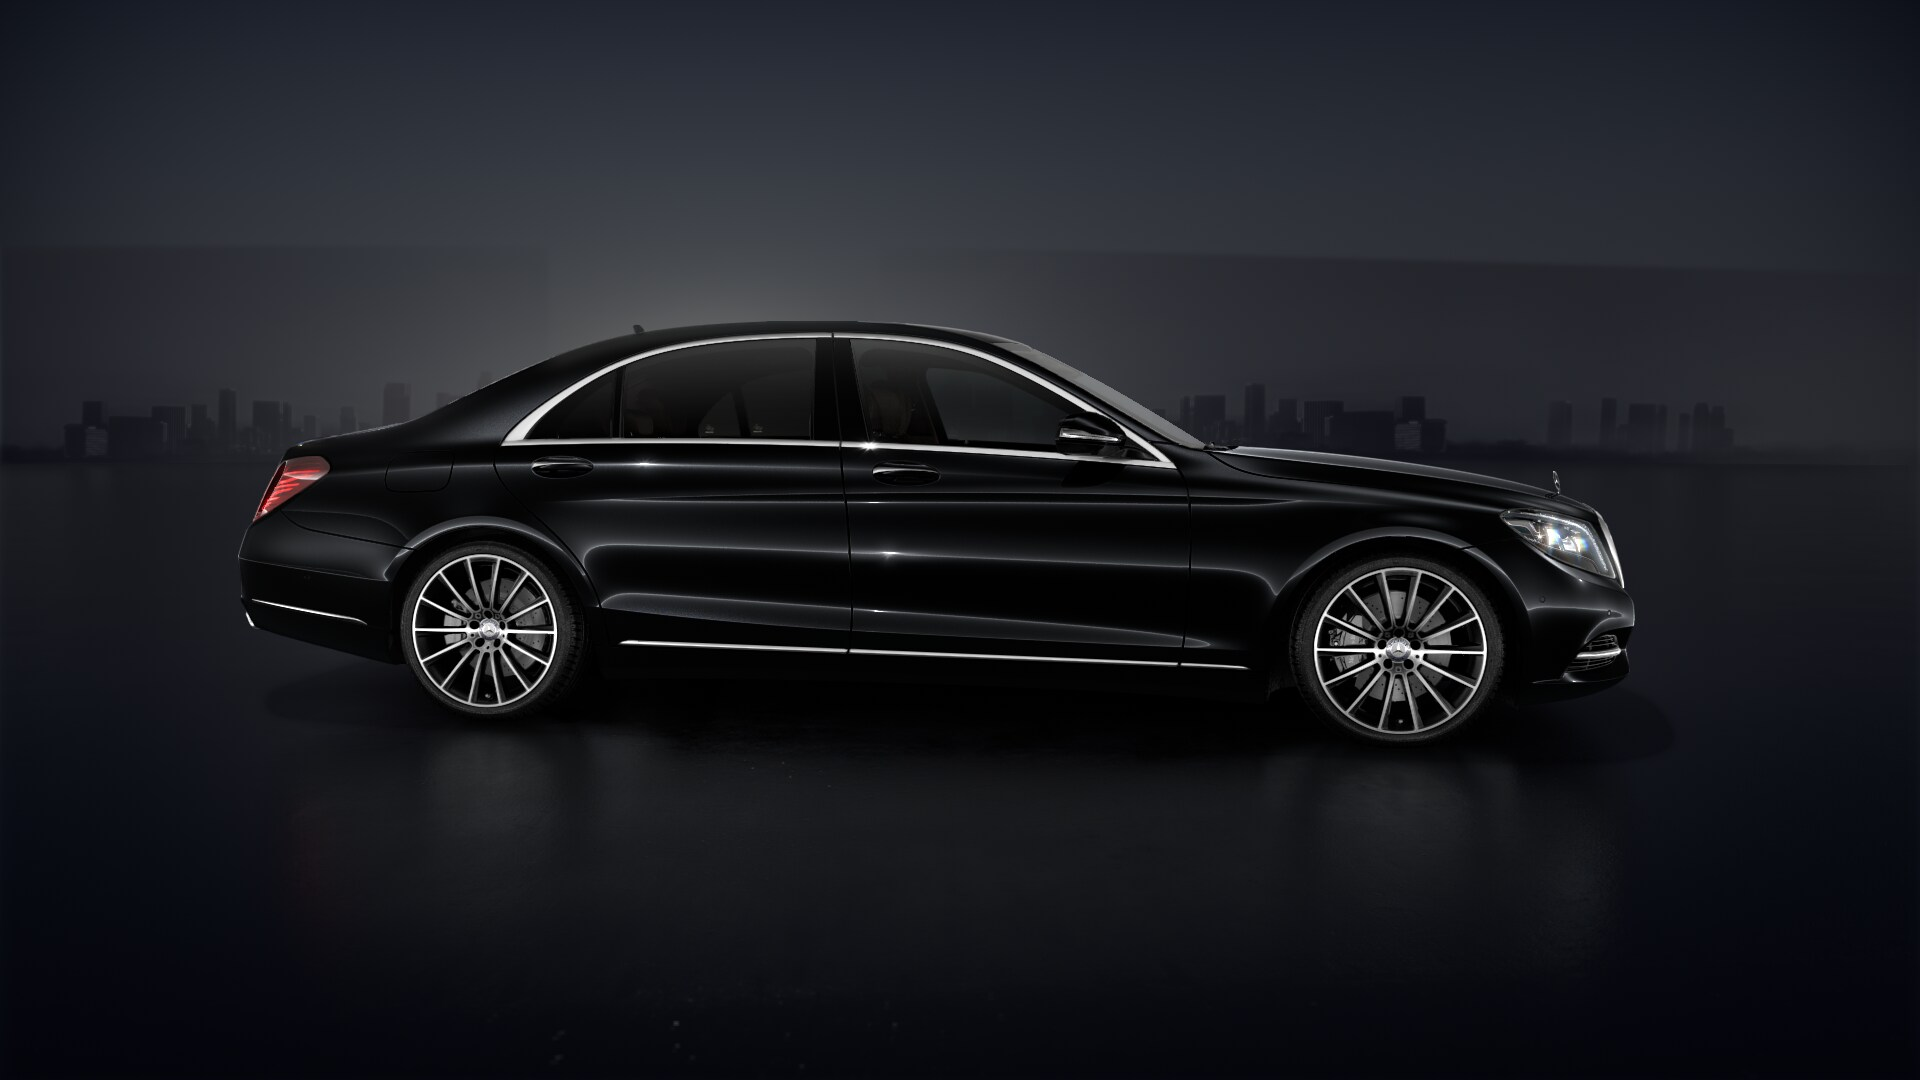 mercedes benz s class s500l 4matic alphubel limousine. Black Bedroom Furniture Sets. Home Design Ideas